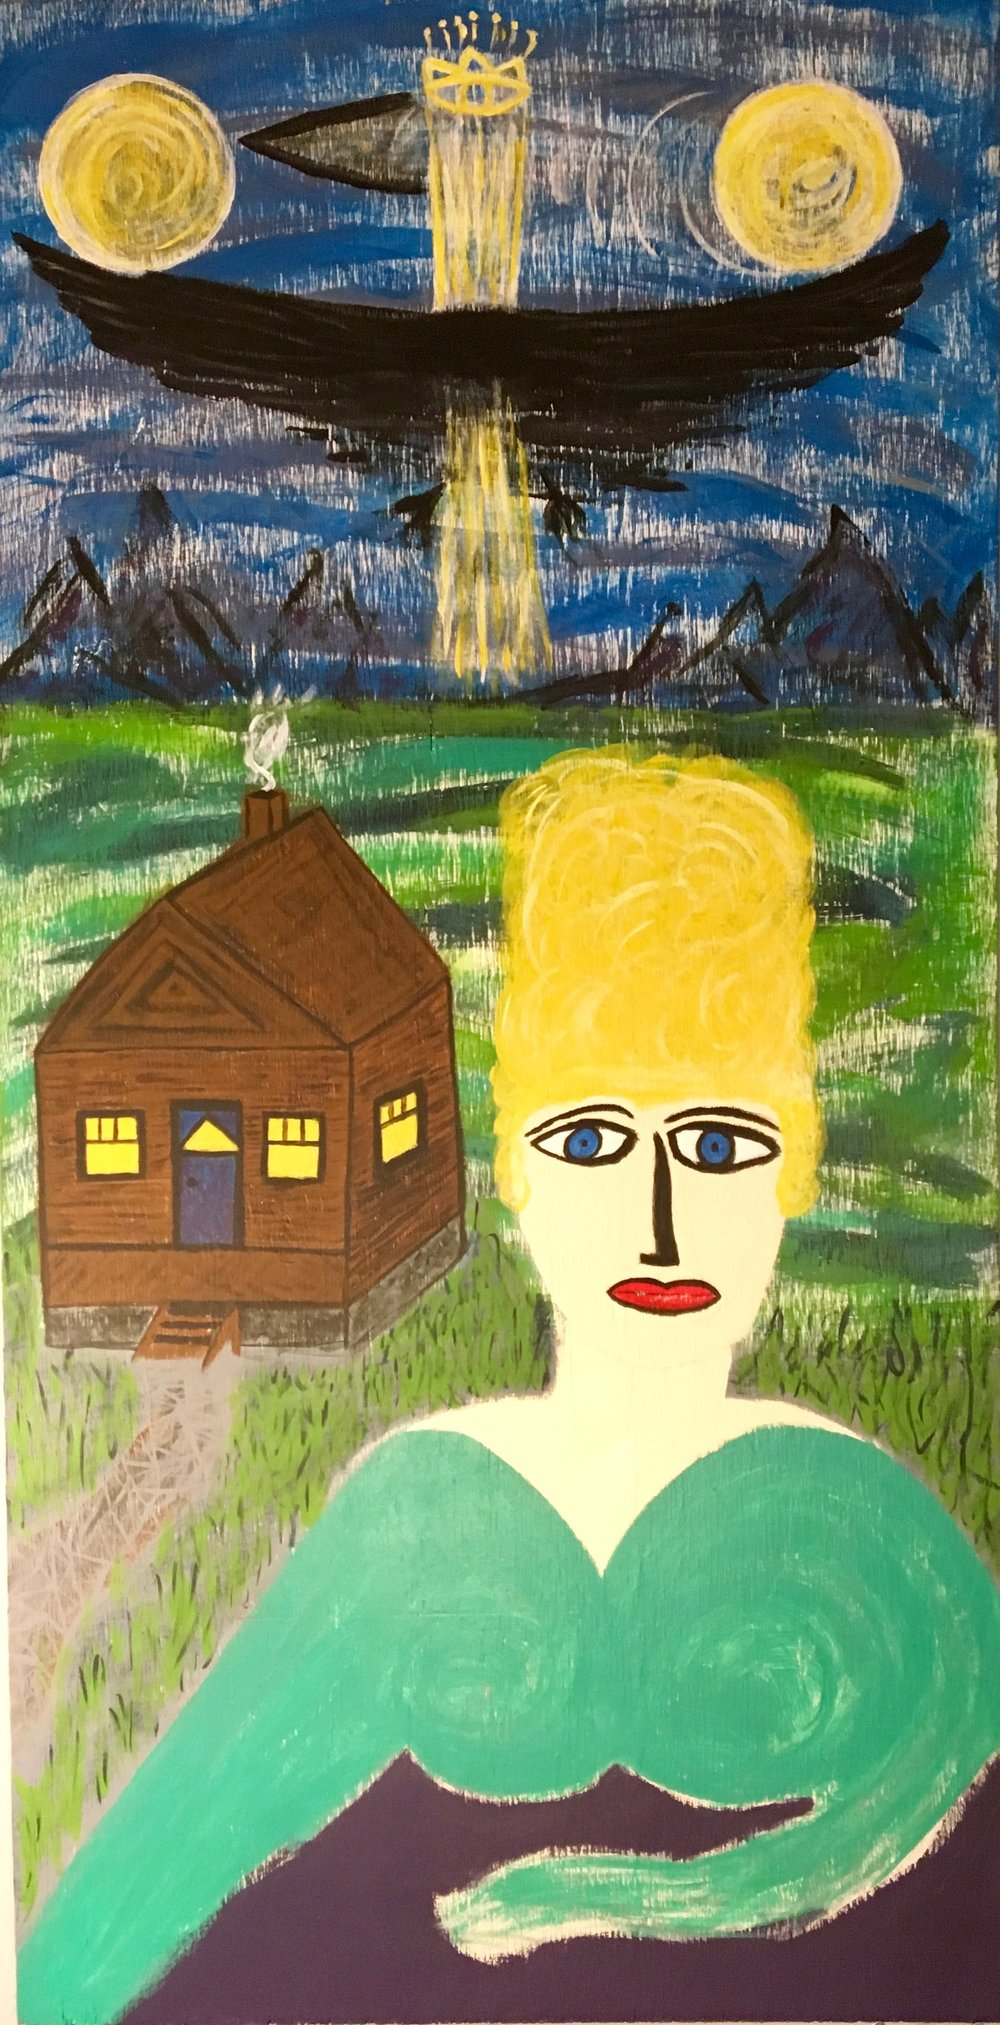 Husband & WIFE (RIGHT) - Paint on 2x4 Wood Panel by Aaron Berg